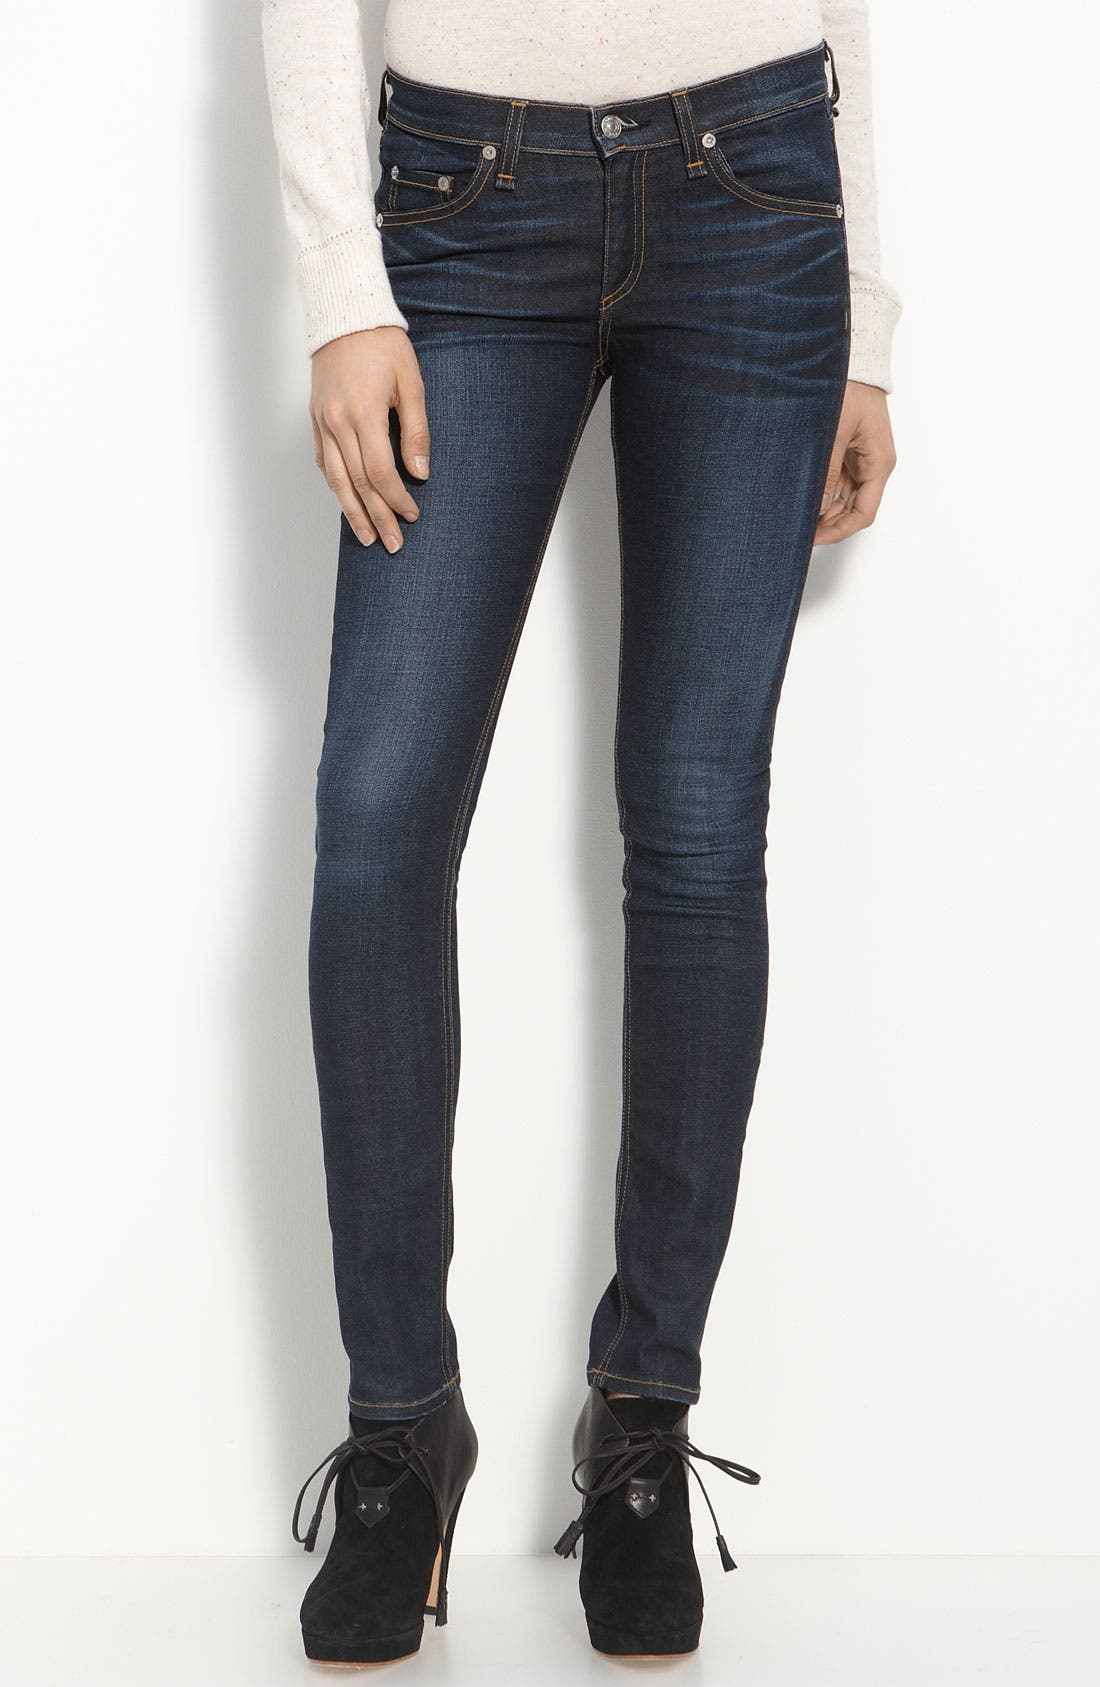 Alternate Image 1 Selected - rag & bone/JEAN Skinny Stretch Jeans (Kensington)